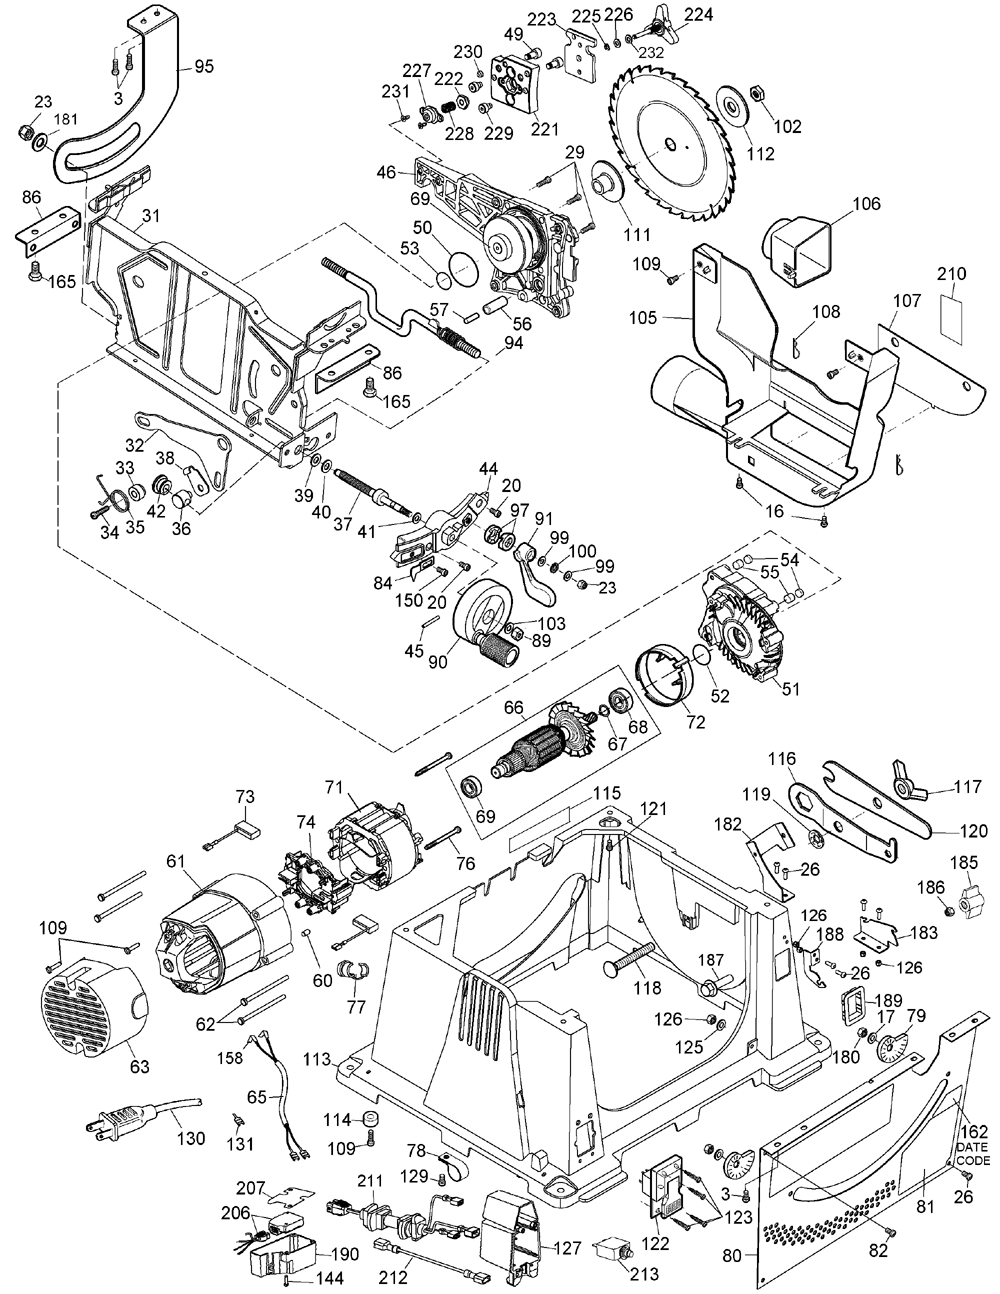 DeWalt DW744X Type-6 Parts Schematic